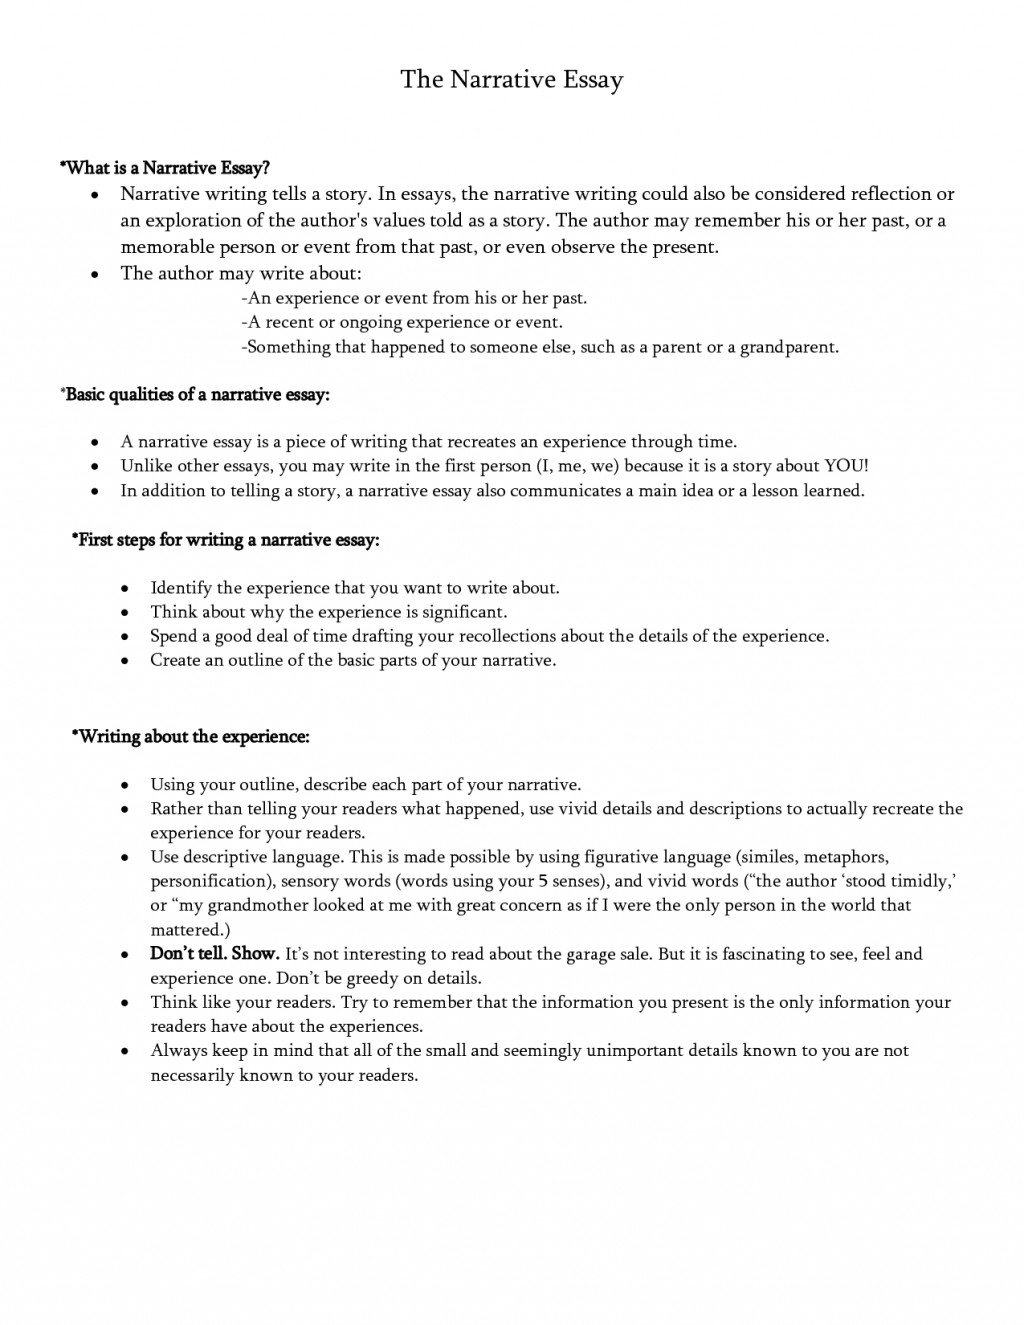 008 Cause Andct Essay Smoking Professional Resume Writing Services Bangalore How Write Passivects Of Negative N Causes Cigarettes Short Free In Hindi Consequences Cigarette Risks Breathtaking And Effect On Pdf Quitting Large